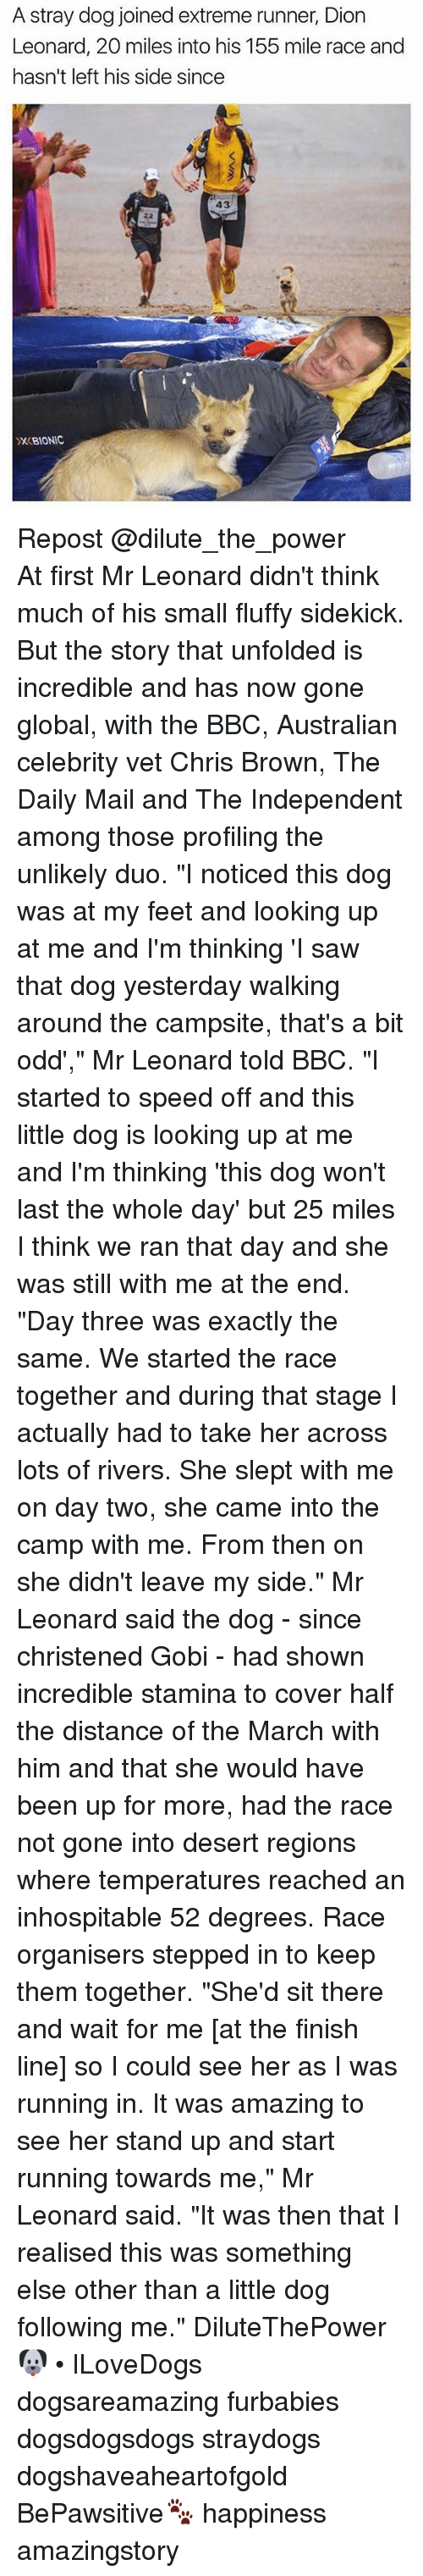 "Chris Brown, Finish Line, and Memes: A stray dog joined extreme runner, Dion  Leonard, 20 miles into his 155 mile race and  hasn't left his side since  43  XBIONIC Repost @dilute_the_power ・・・ At first Mr Leonard didn't think much of his small fluffy sidekick. But the story that unfolded is incredible and has now gone global, with the BBC, Australian celebrity vet Chris Brown, The Daily Mail and The Independent among those profiling the unlikely duo. ""I noticed this dog was at my feet and looking up at me and I'm thinking 'I saw that dog yesterday walking around the campsite, that's a bit odd',"" Mr Leonard told BBC. ""I started to speed off and this little dog is looking up at me and I'm thinking 'this dog won't last the whole day' but 25 miles I think we ran that day and she was still with me at the end. ""Day three was exactly the same. We started the race together and during that stage I actually had to take her across lots of rivers. She slept with me on day two, she came into the camp with me. From then on she didn't leave my side."" Mr Leonard said the dog - since christened Gobi - had shown incredible stamina to cover half the distance of the March with him and that she would have been up for more, had the race not gone into desert regions where temperatures reached an inhospitable 52 degrees. Race organisers stepped in to keep them together. ""She'd sit there and wait for me [at the finish line] so I could see her as I was running in. It was amazing to see her stand up and start running towards me,"" Mr Leonard said. ""It was then that I realised this was something else other than a little dog following me."" DiluteThePower 🐶 • ILoveDogs dogsareamazing furbabies dogsdogsdogs straydogs dogshaveaheartofgold BePawsitive🐾 happiness amazingstory"